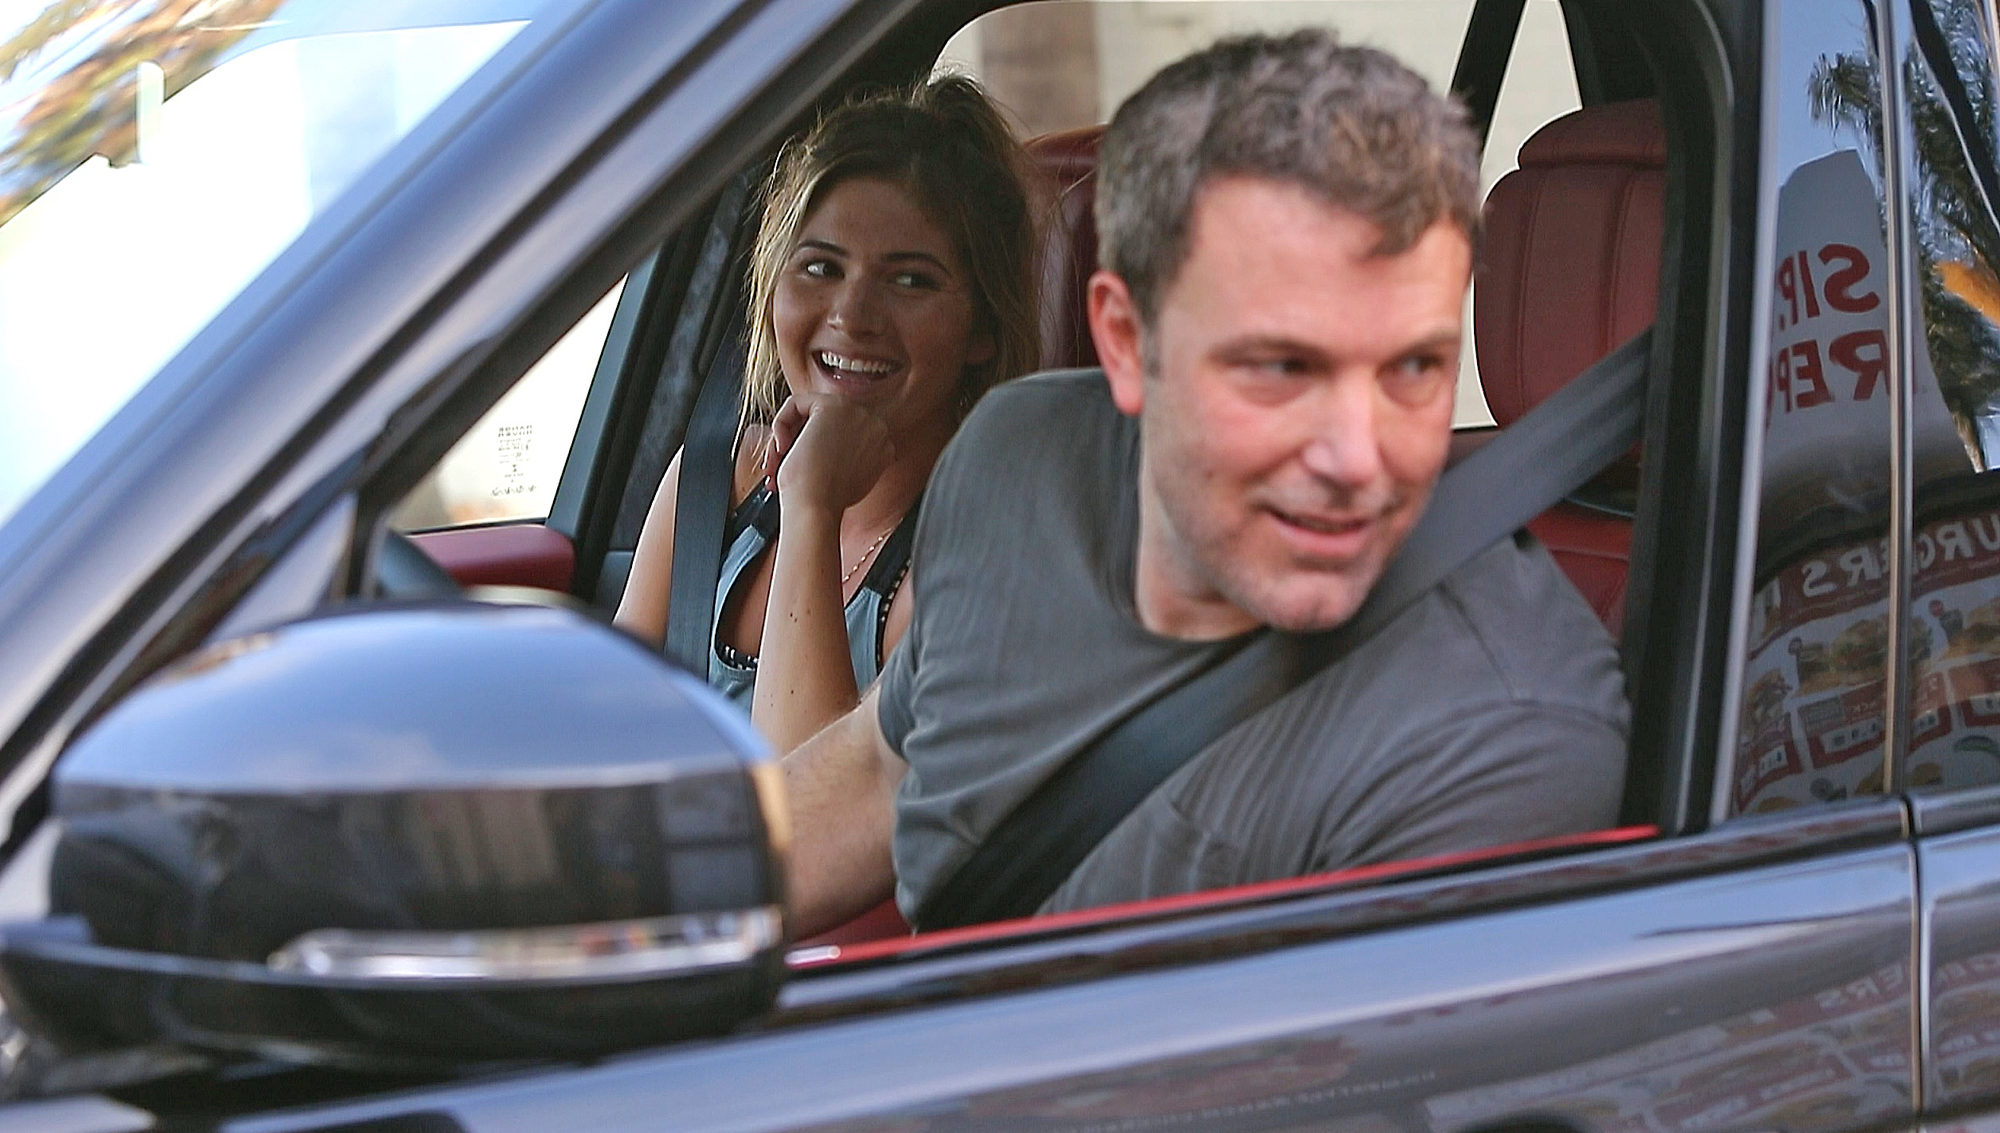 Ben Affleck and Shauna Sexton Drive-Thru - Embed 1